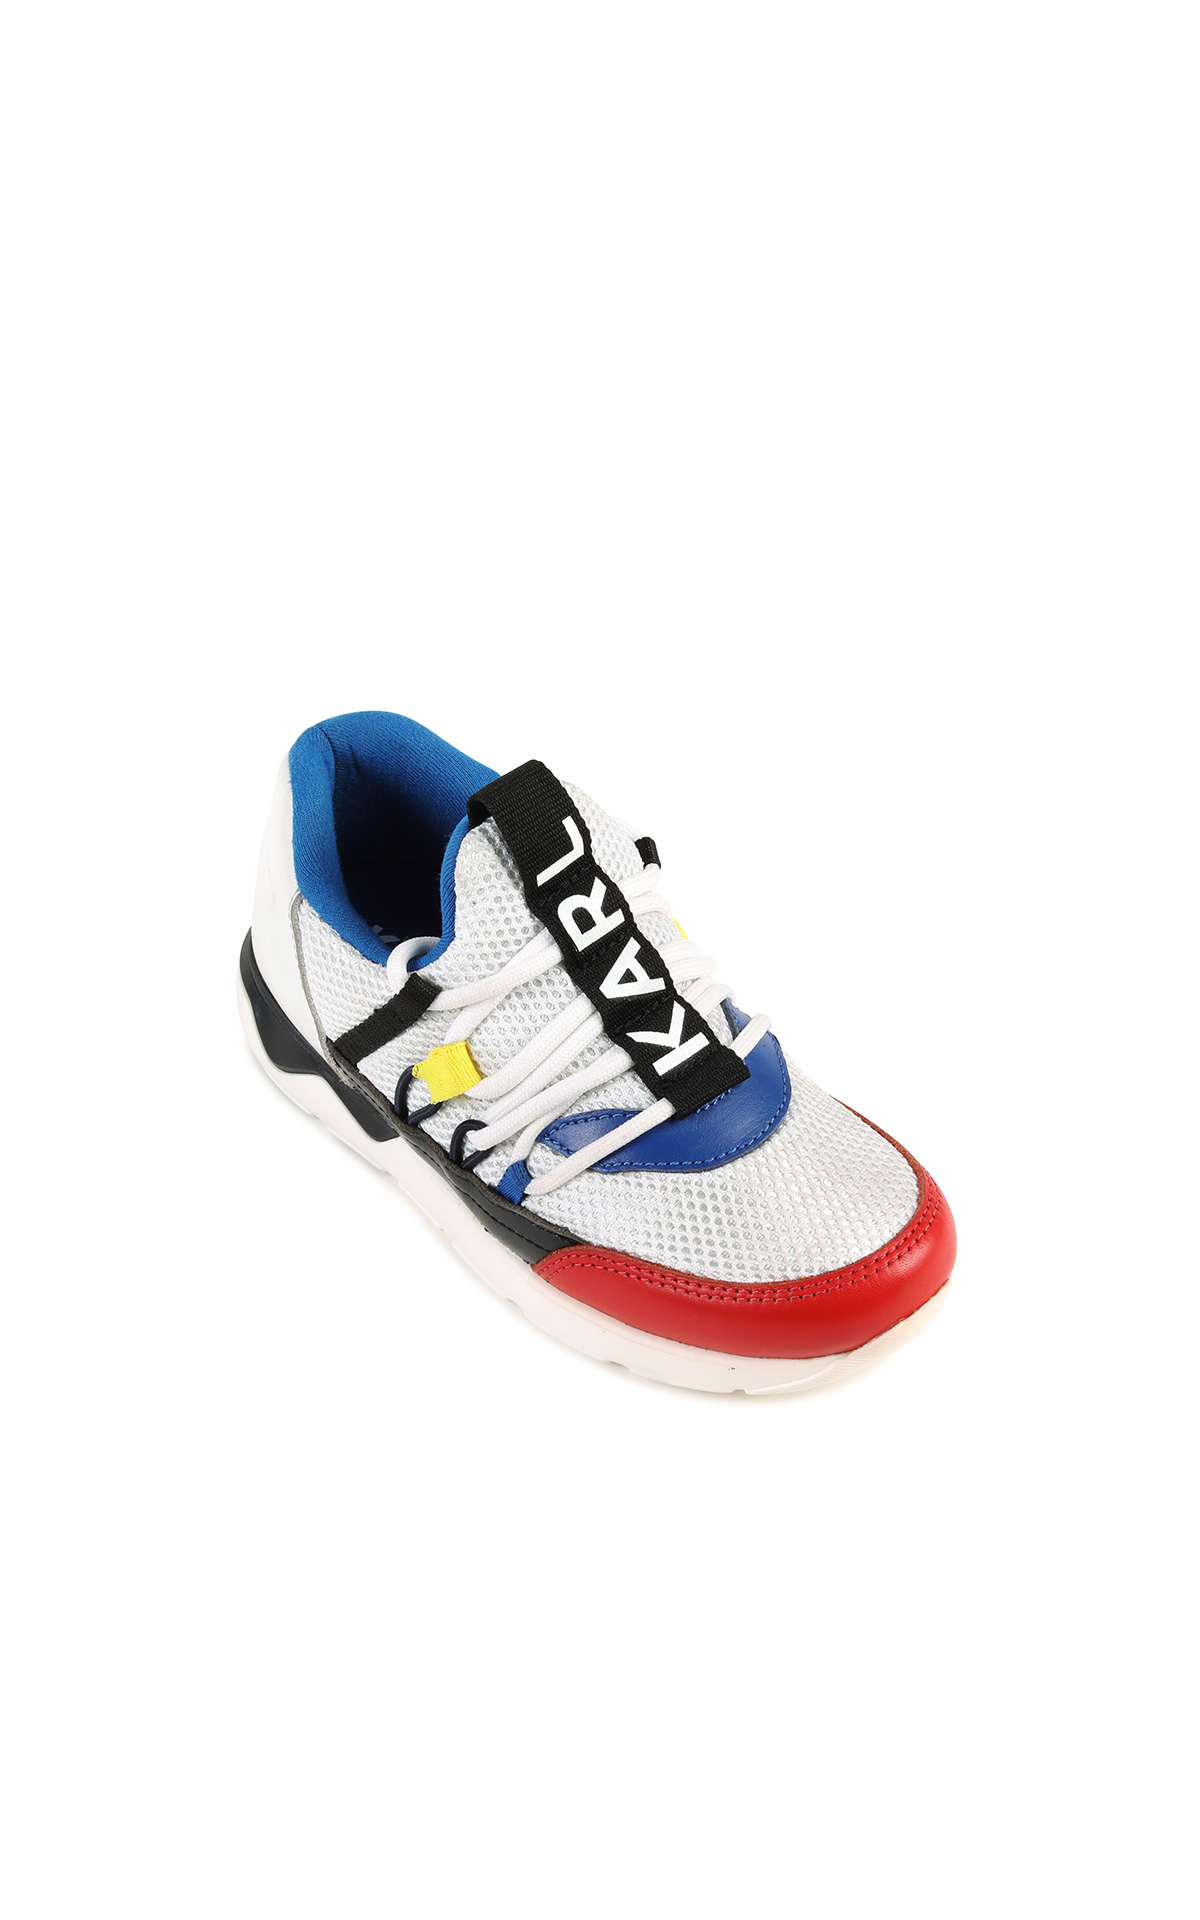 La Vallée Village Karl Lagerfeld Kids Karl sneakers